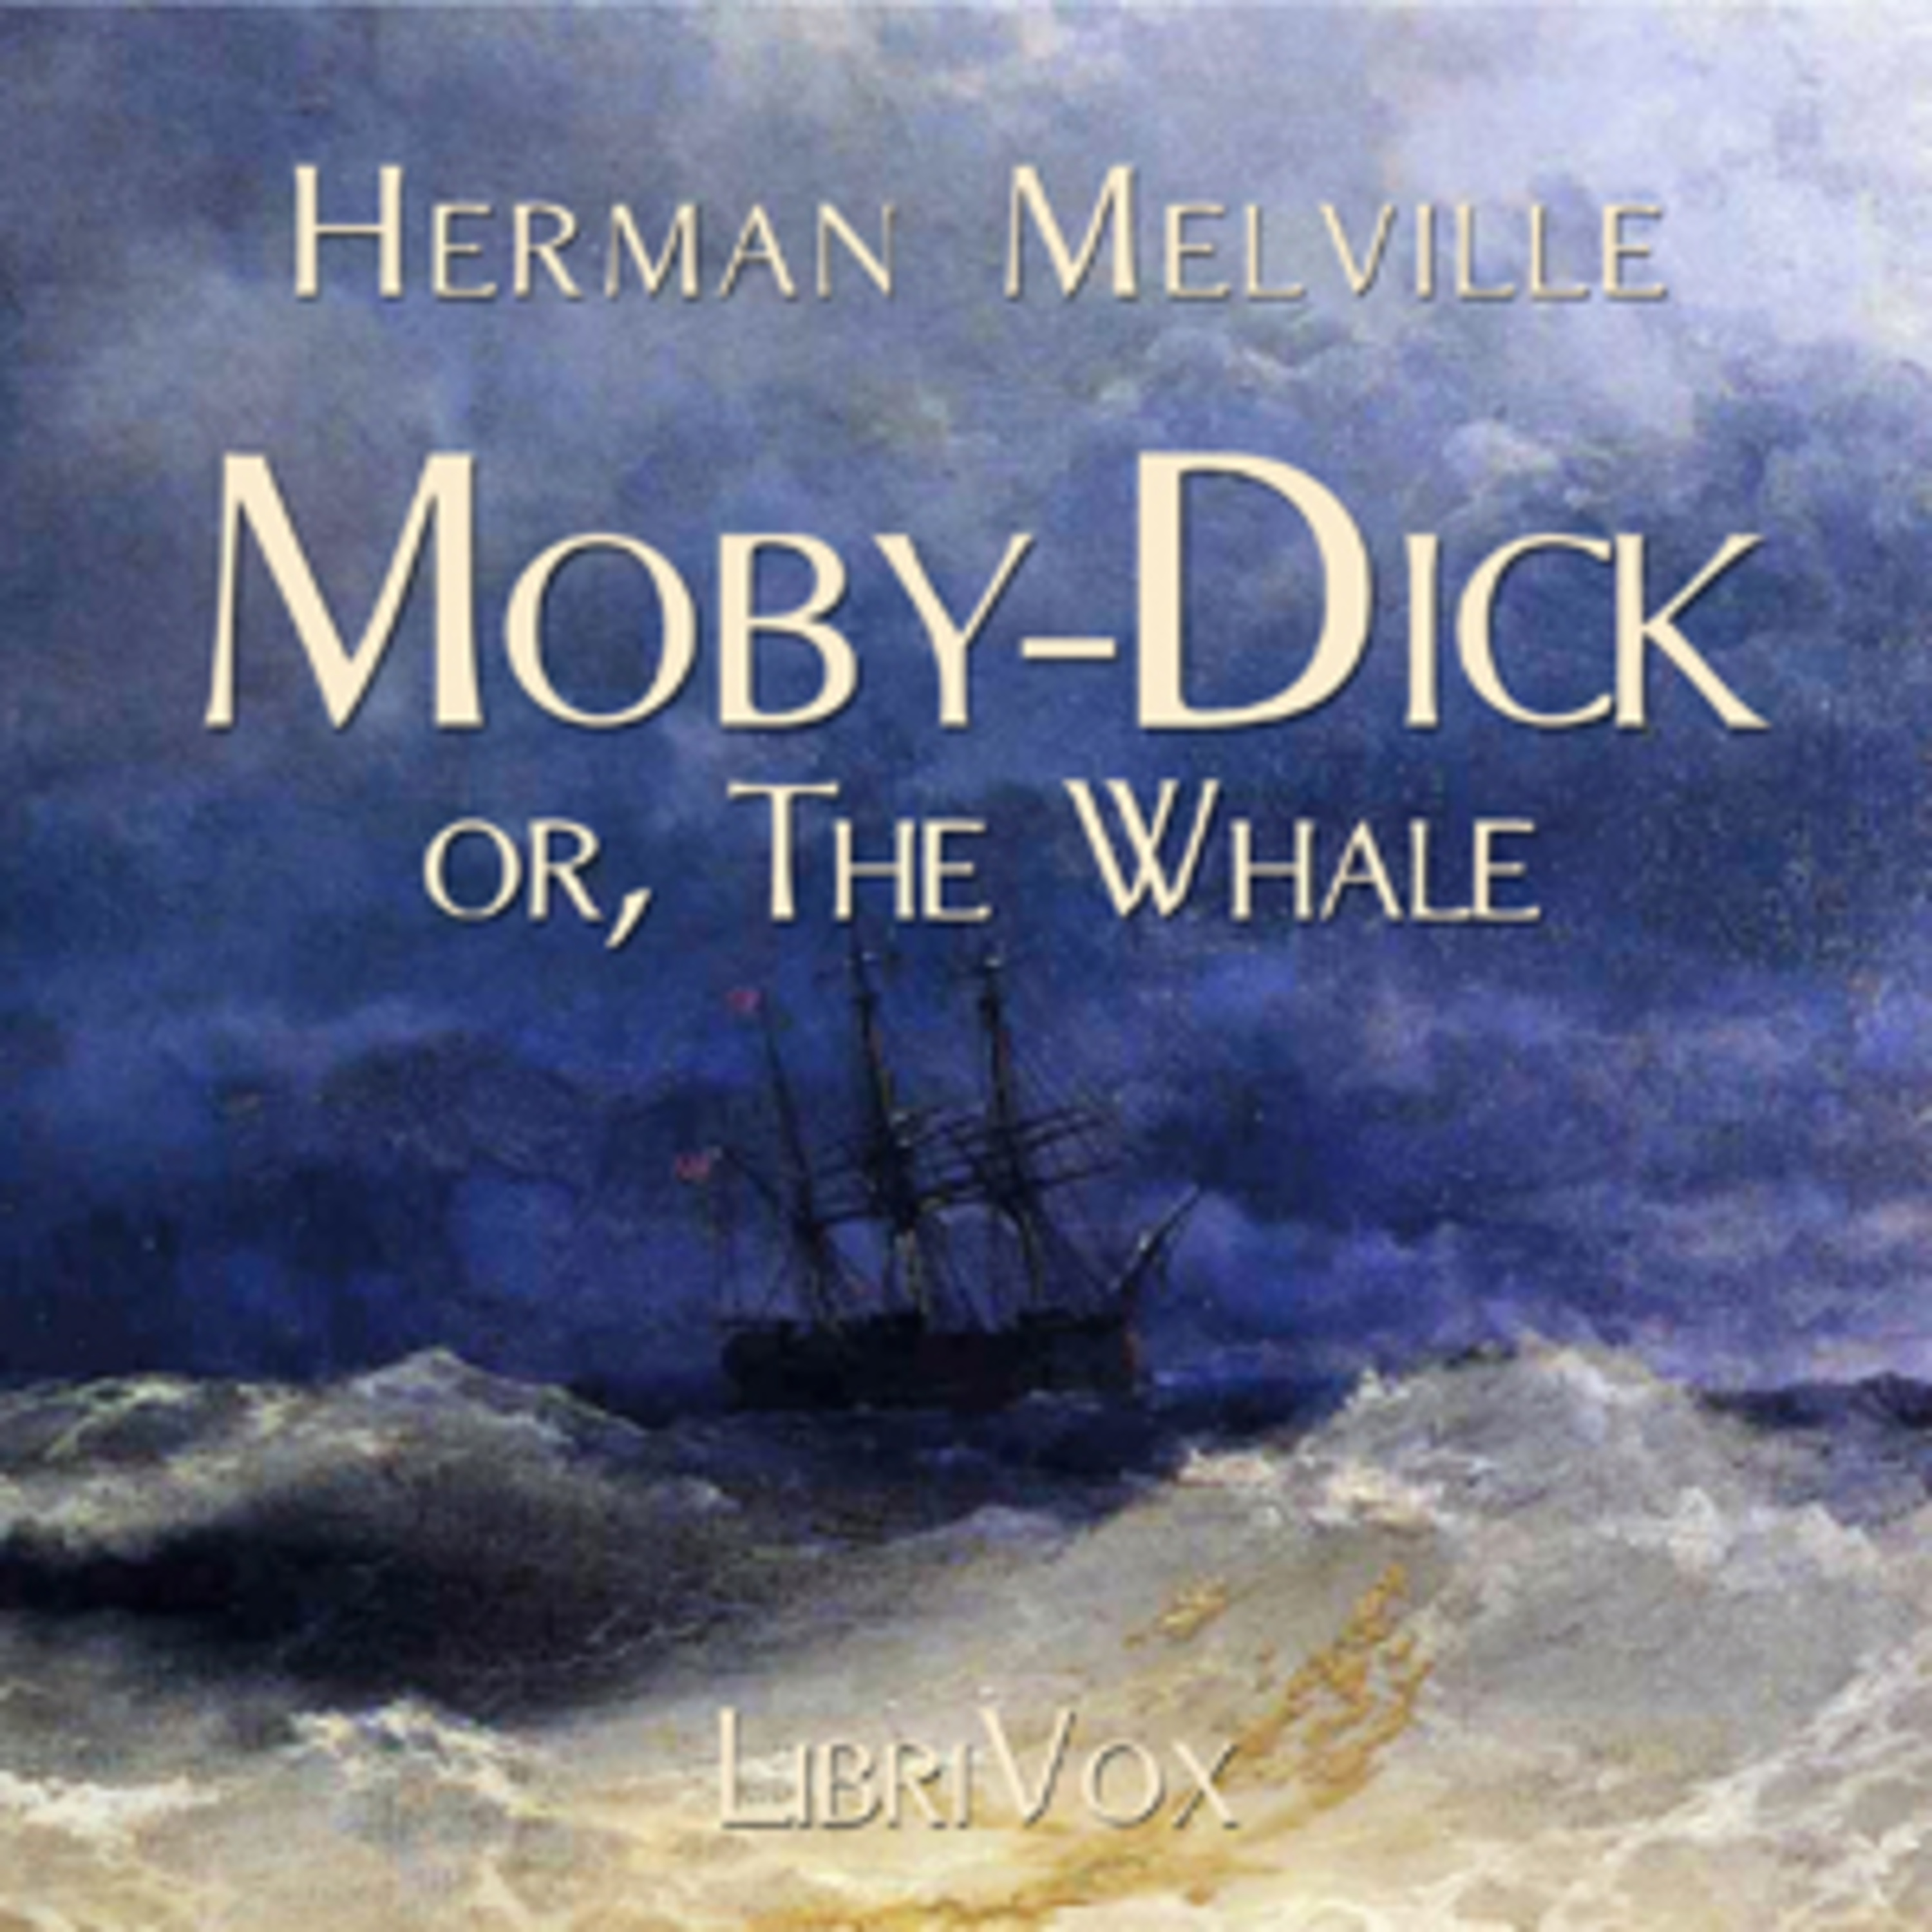 Moby Dick Podcast - Herman Melville - Chapters 4-9